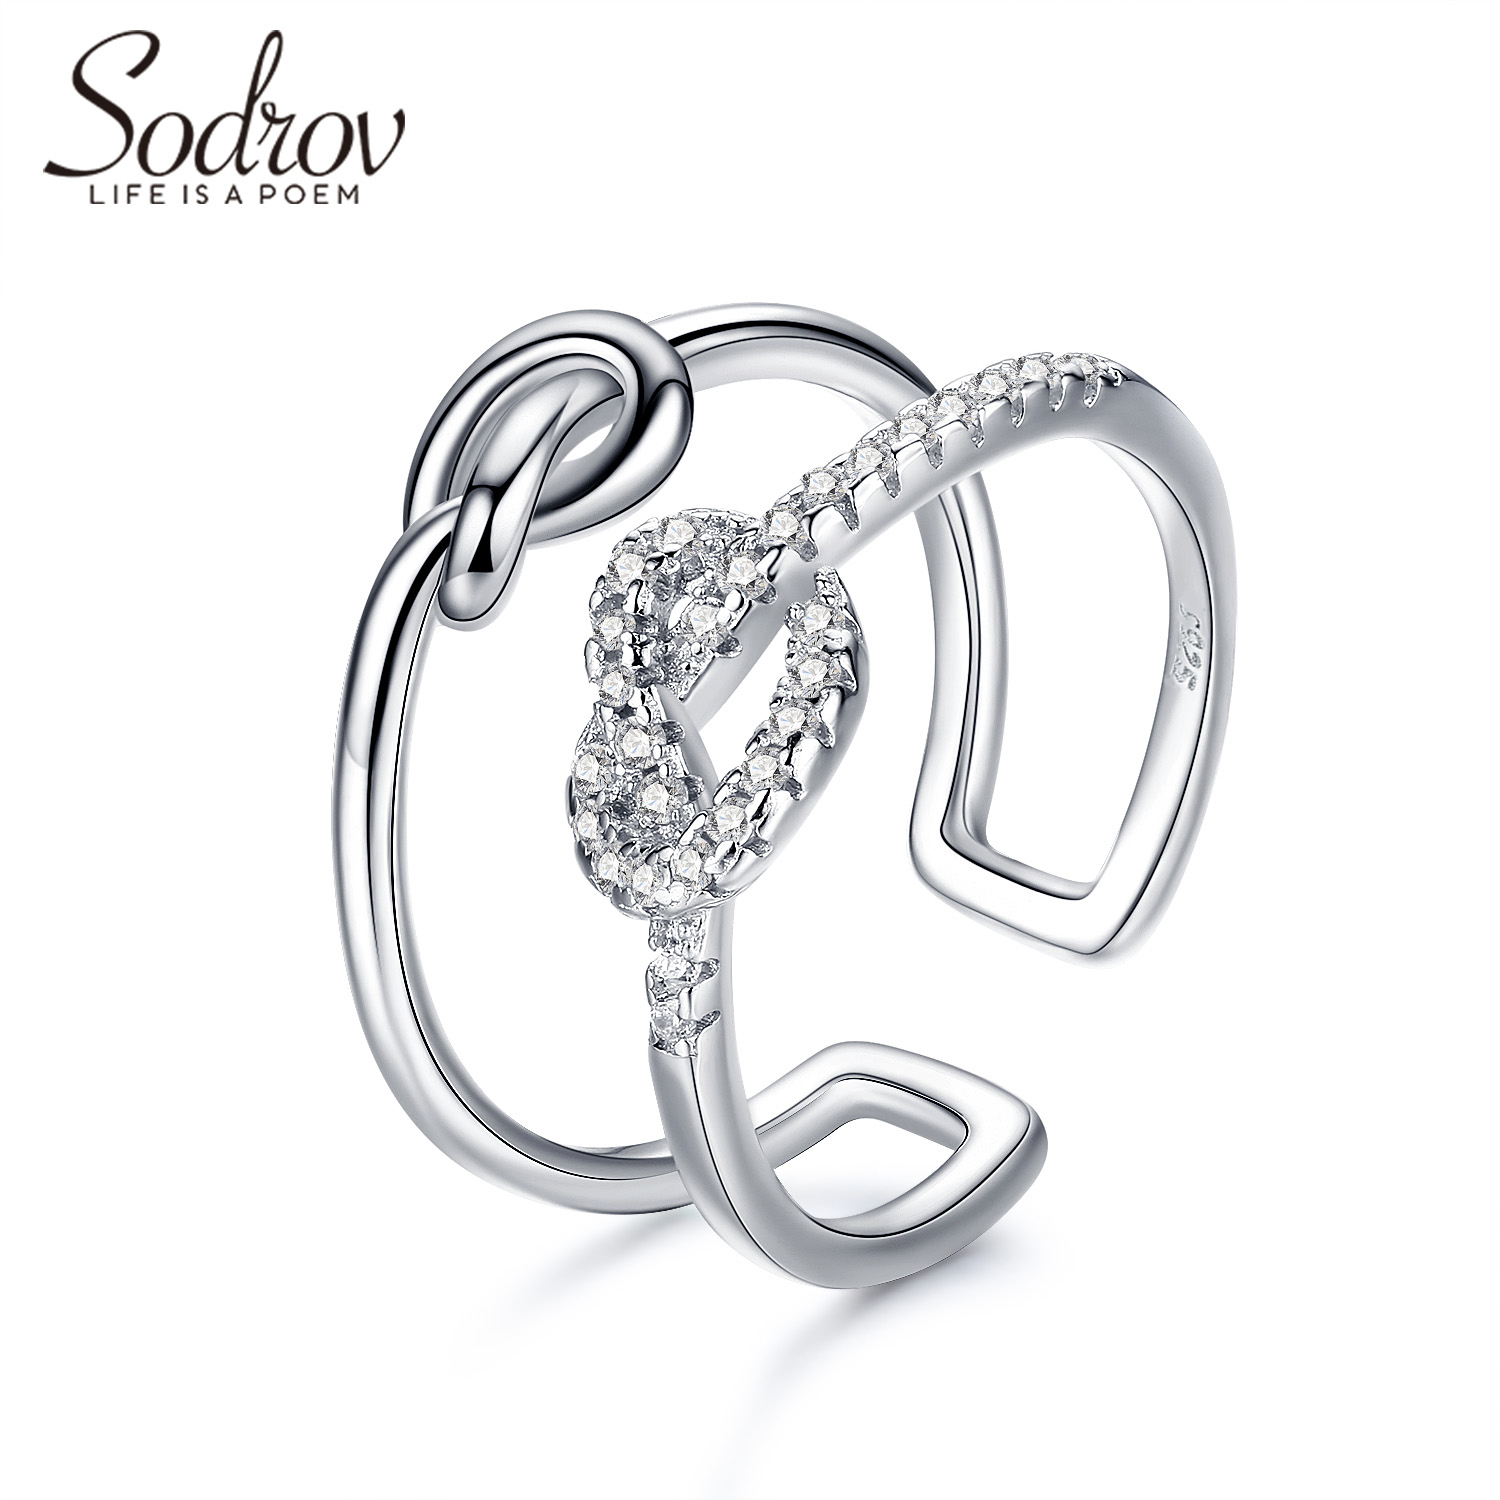 Sodrov Knot Ring Jewelry 925 Sterling Silver For Women Zircon Wedding Bands Adjustable Fine Accessories